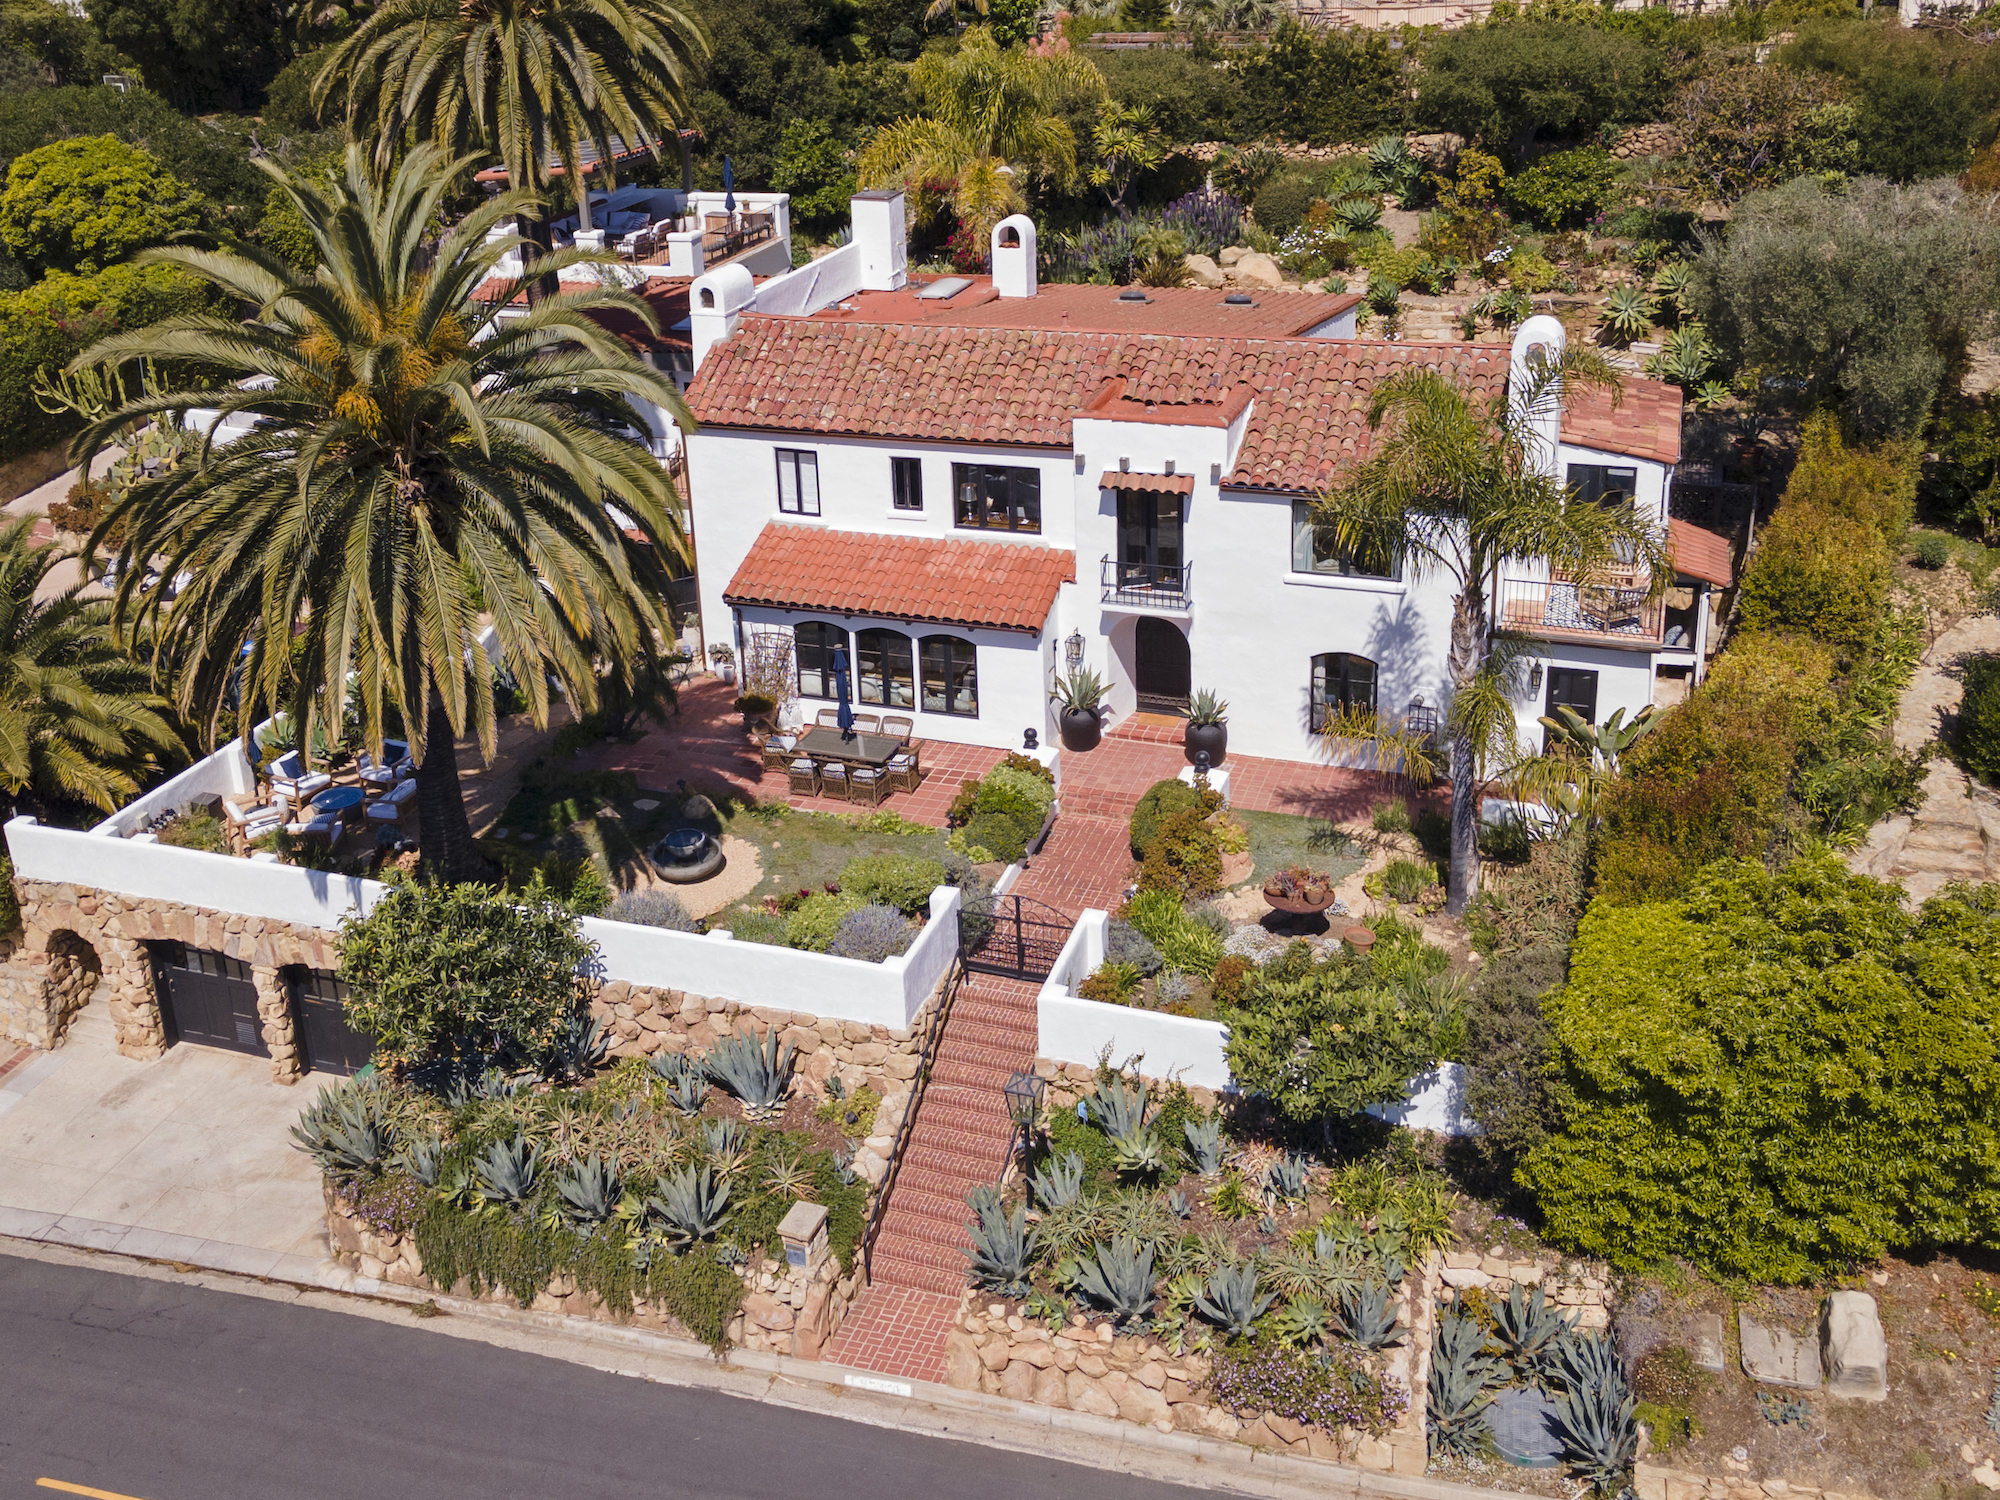 SOLD: Historic Mission Ridge Estate